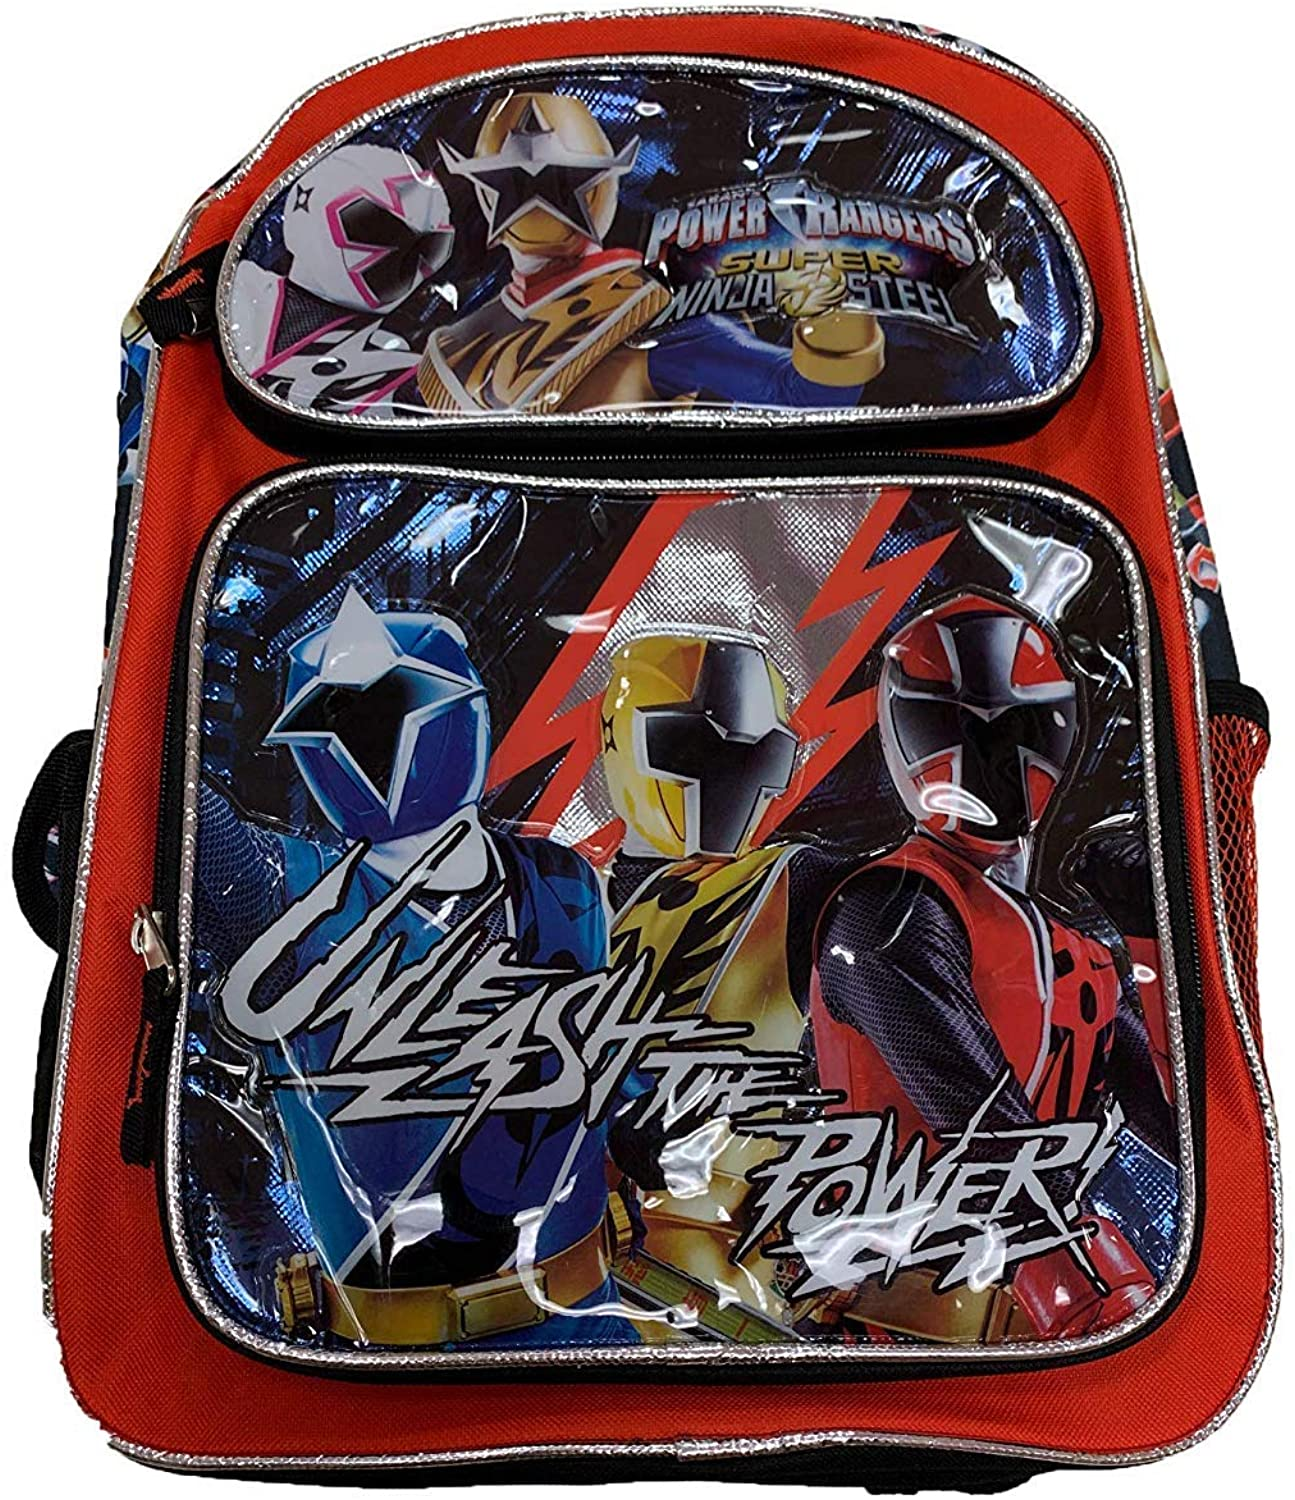 Saban's Power Rangers 16 Inch Large Backpack